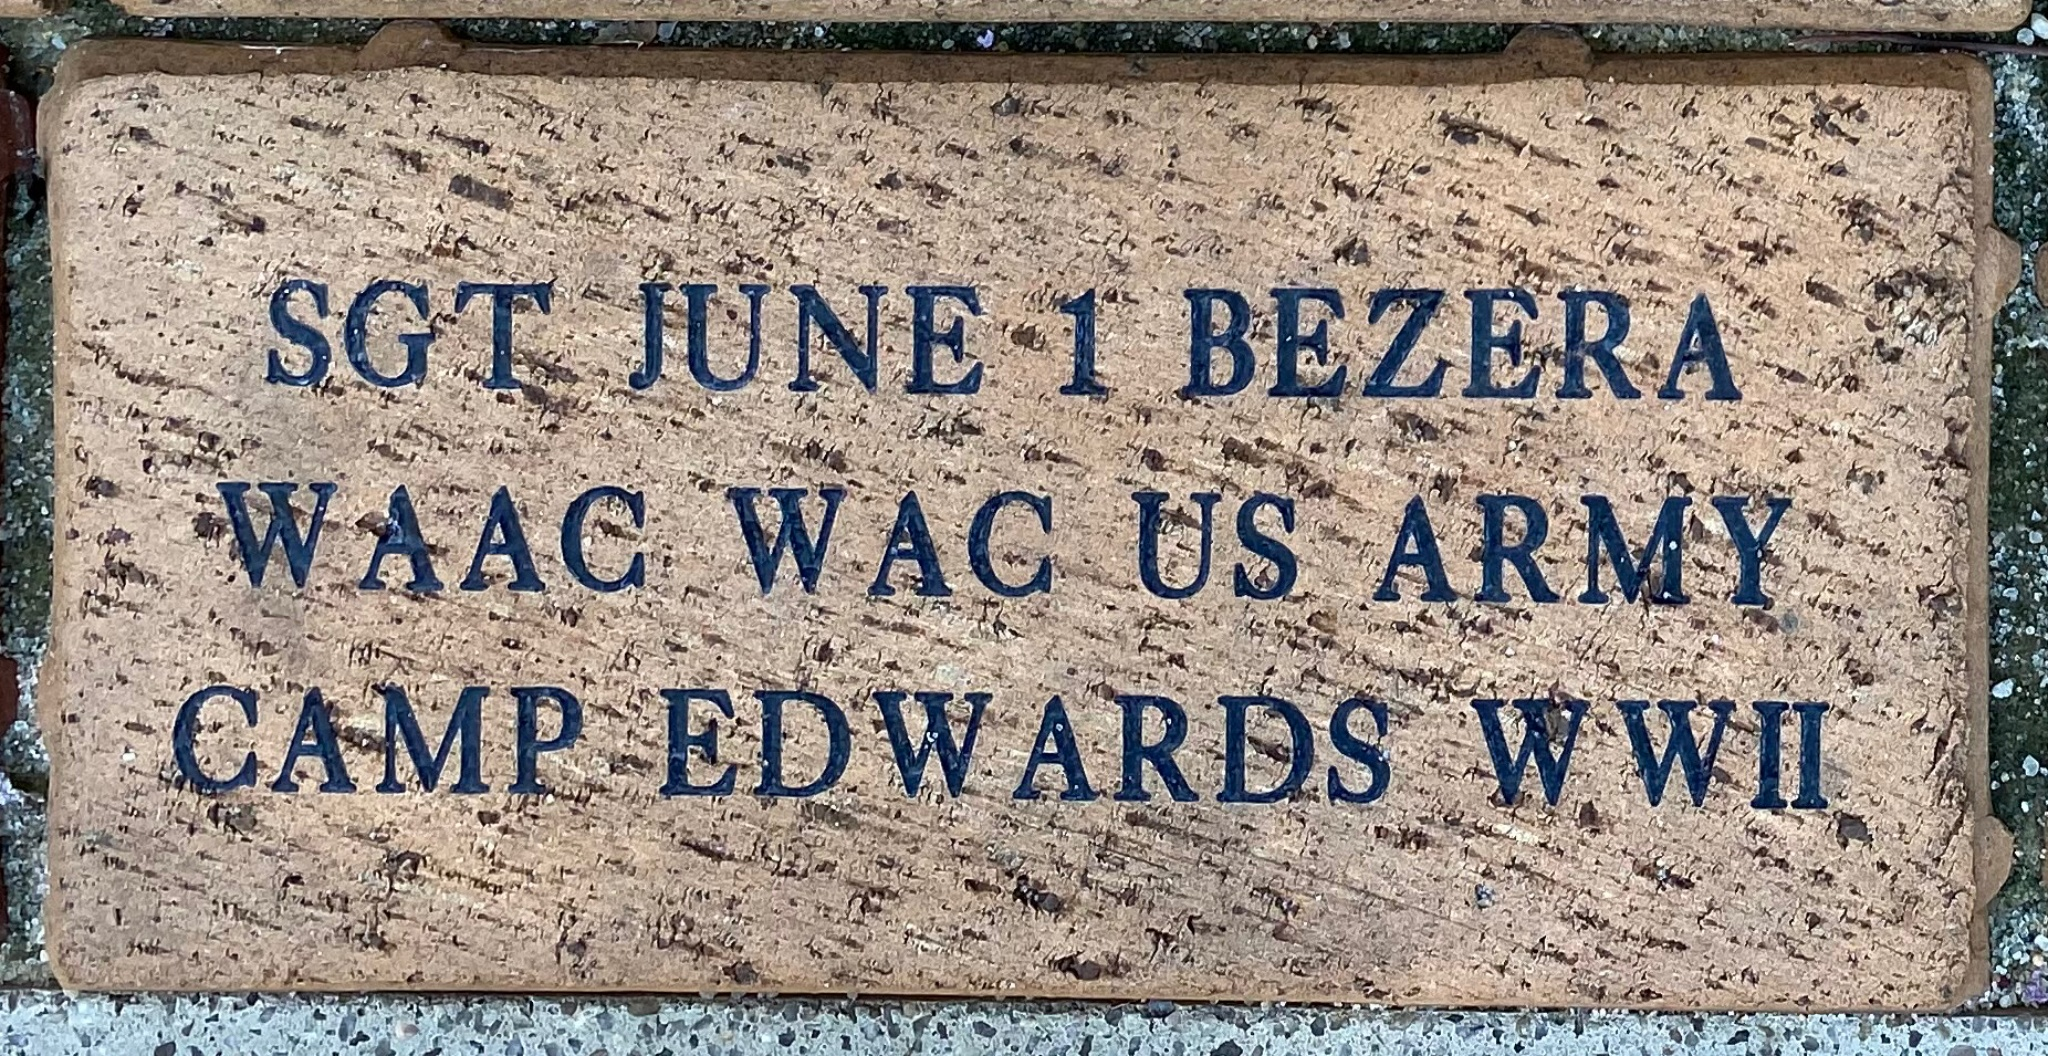 SGT JUNE I BEZERA WAAC WAC US ARMY CAMP EDWARDS WWII